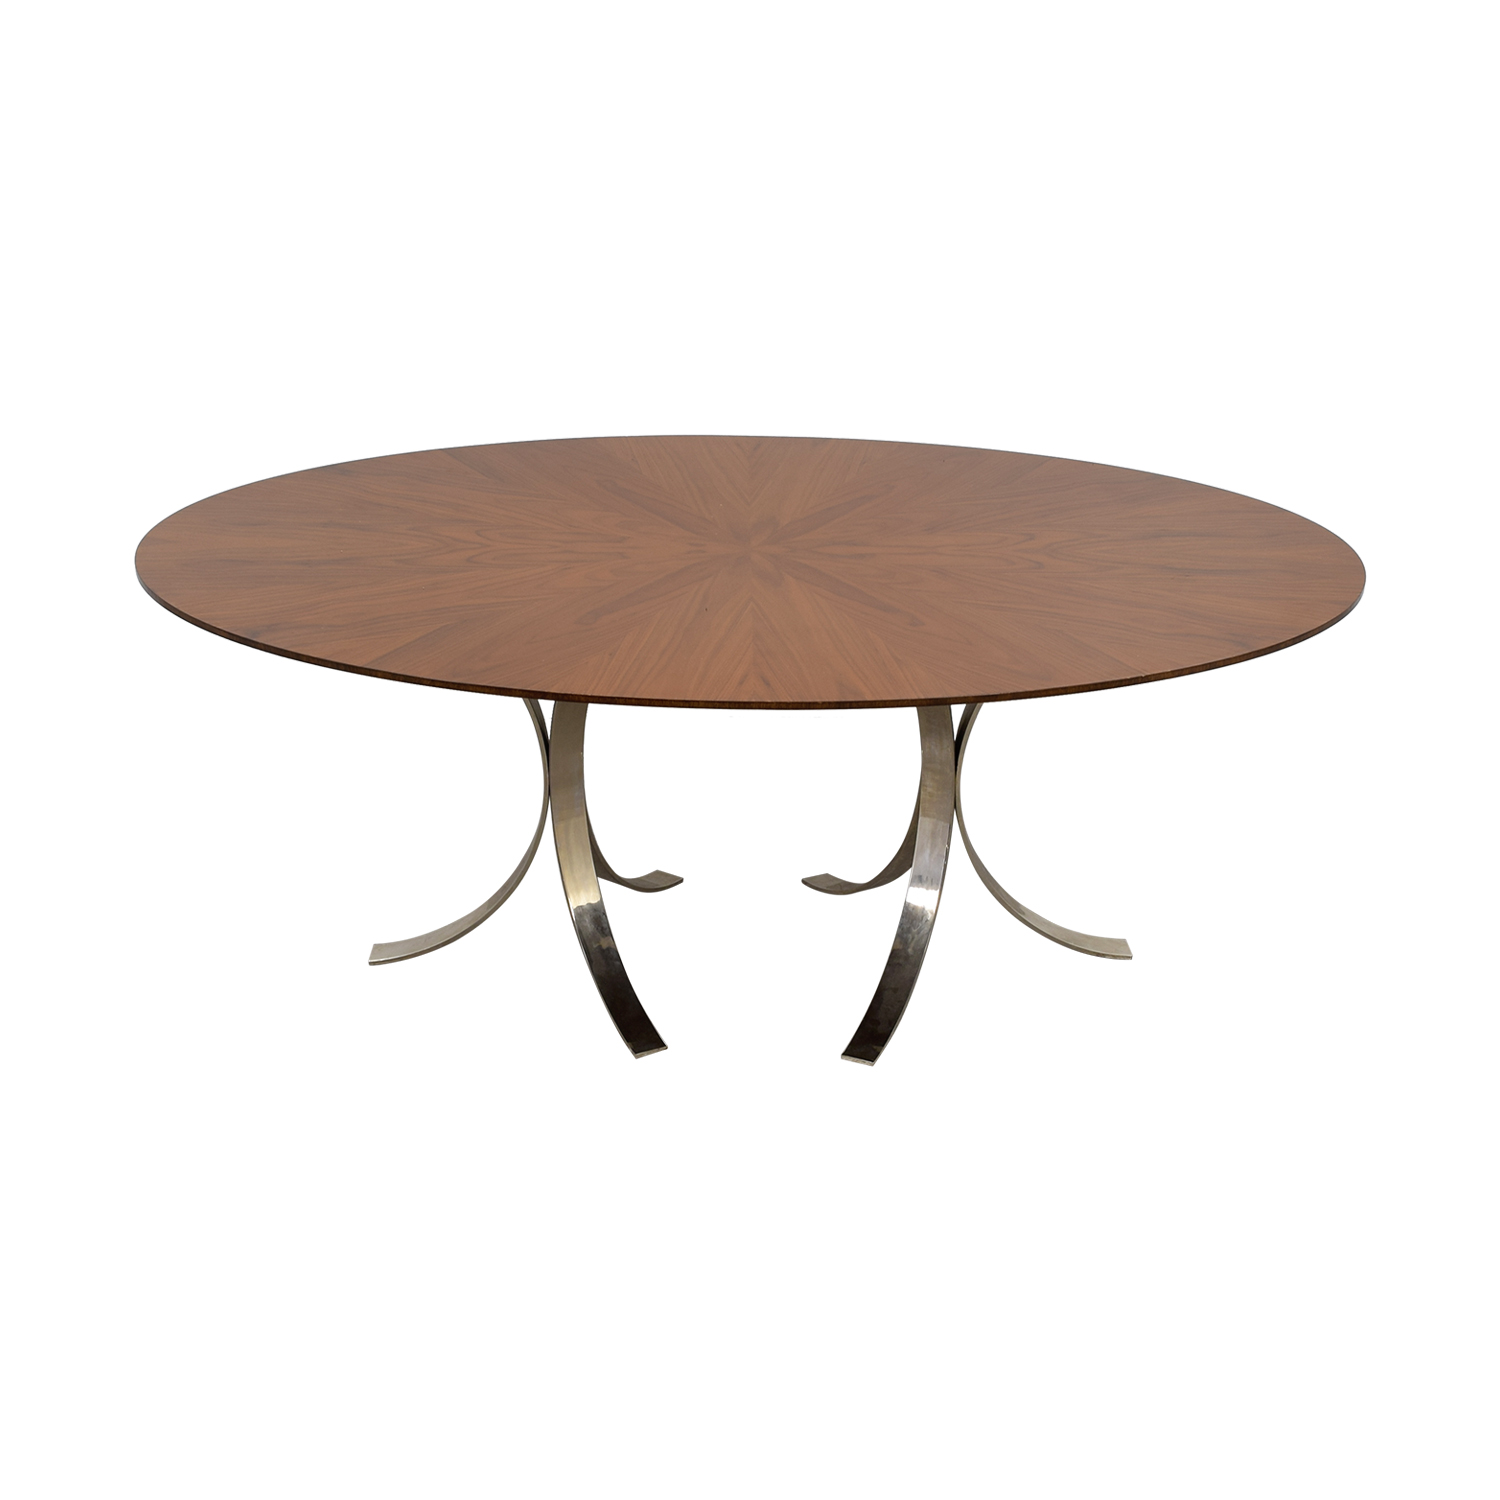 Jonathan Adler Jonathan Adler Oval Wood Table for sale